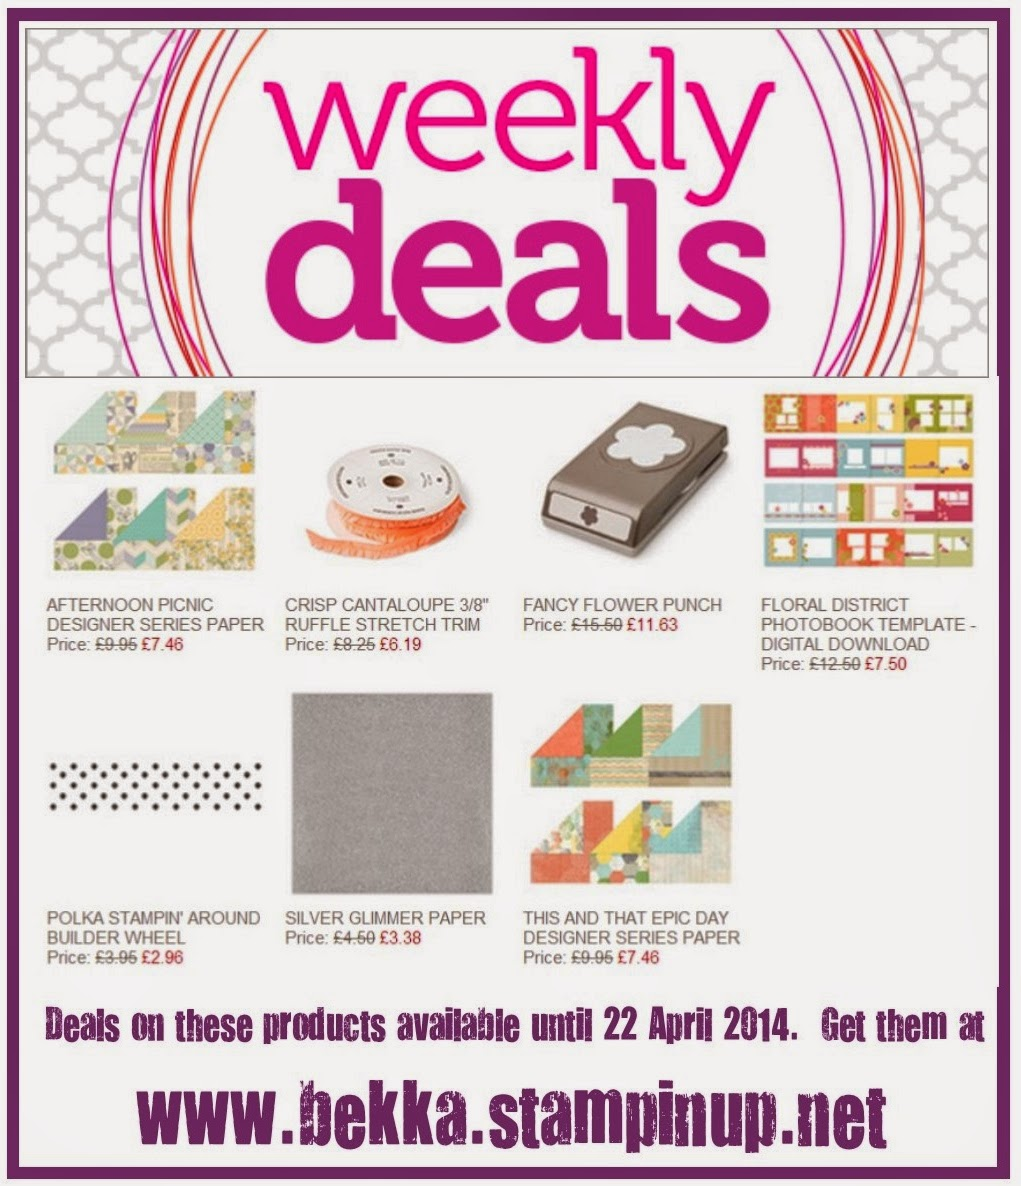 Grab a bargain on these products at www.bekka.stampinup.net until 22 April 2014